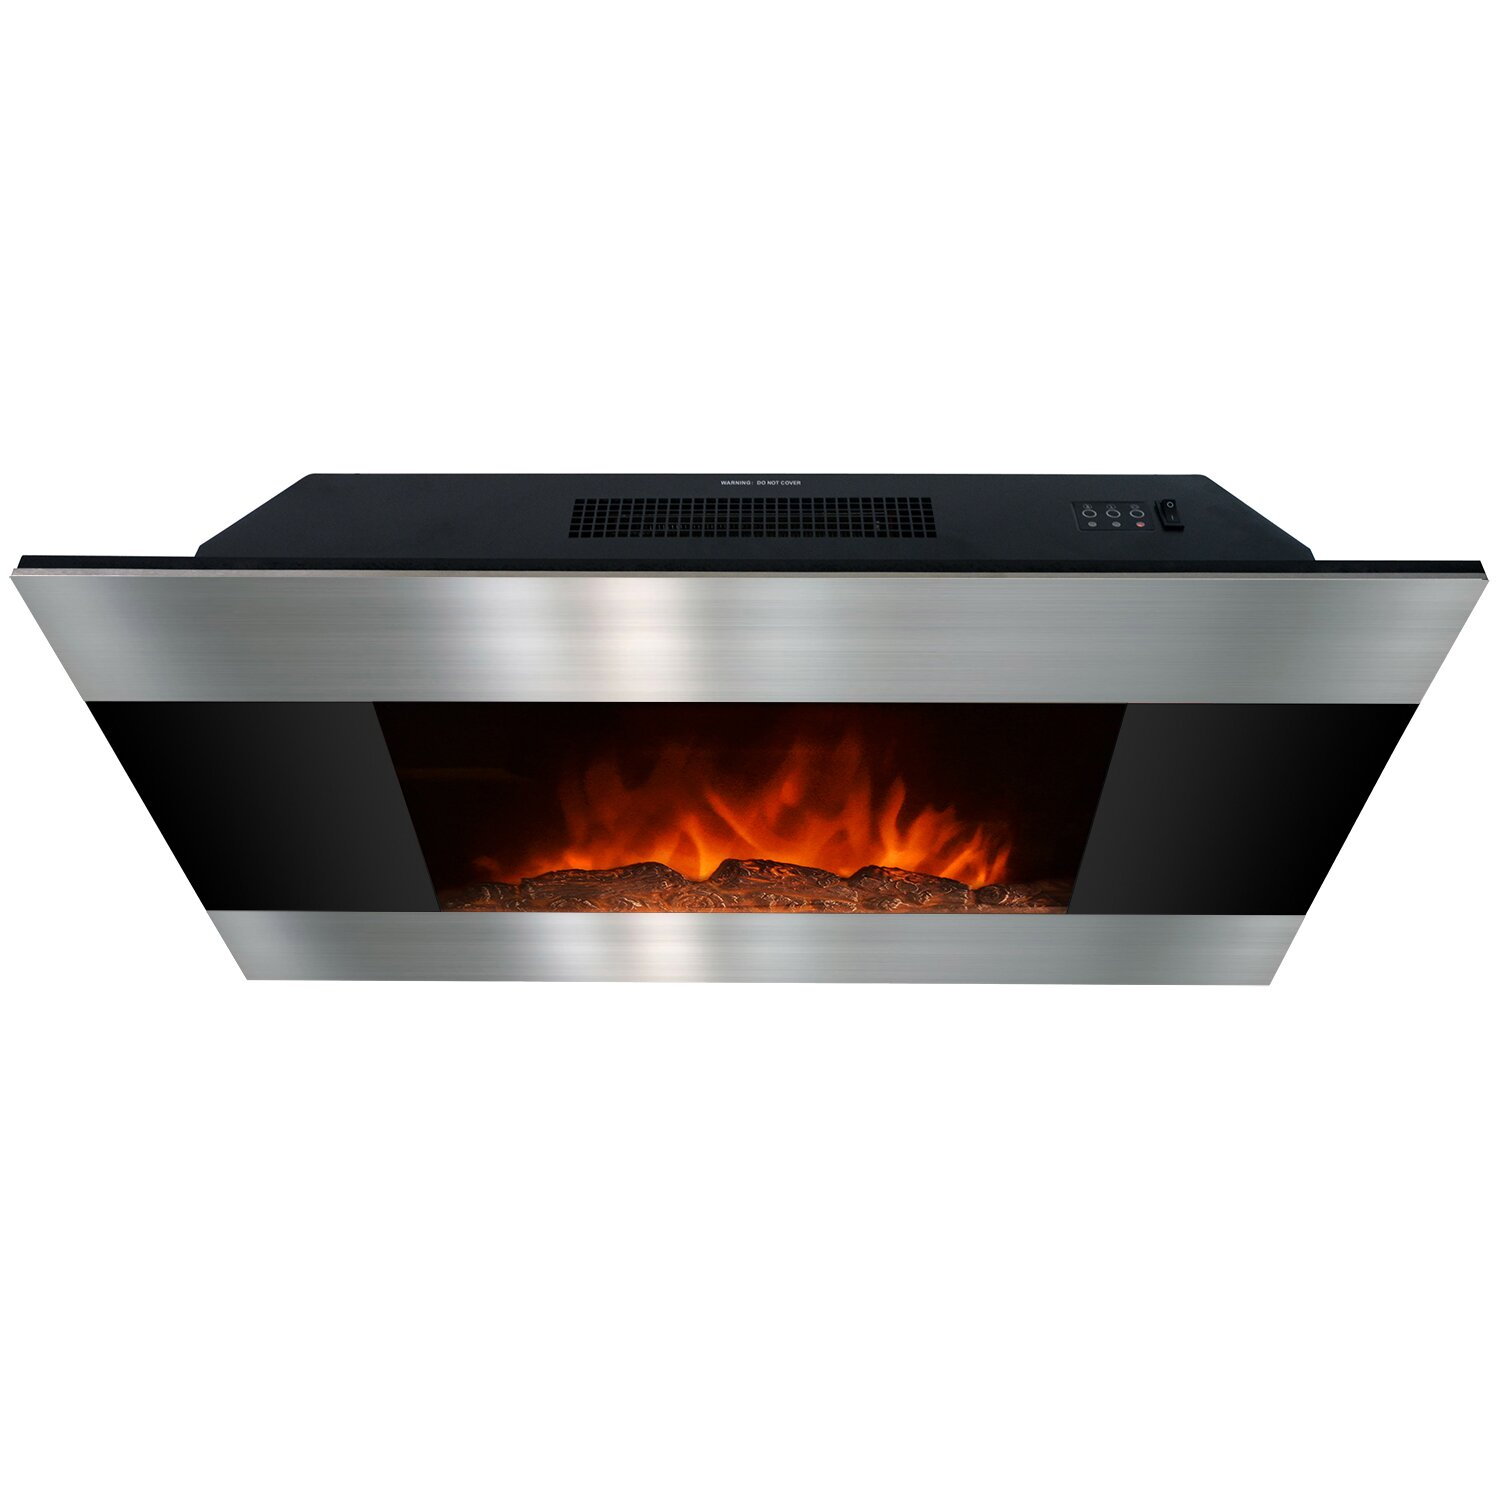 Goldenvantage 36 Wall Mount Stainless Steel And Black Electric Fireplace Reviews Wayfair